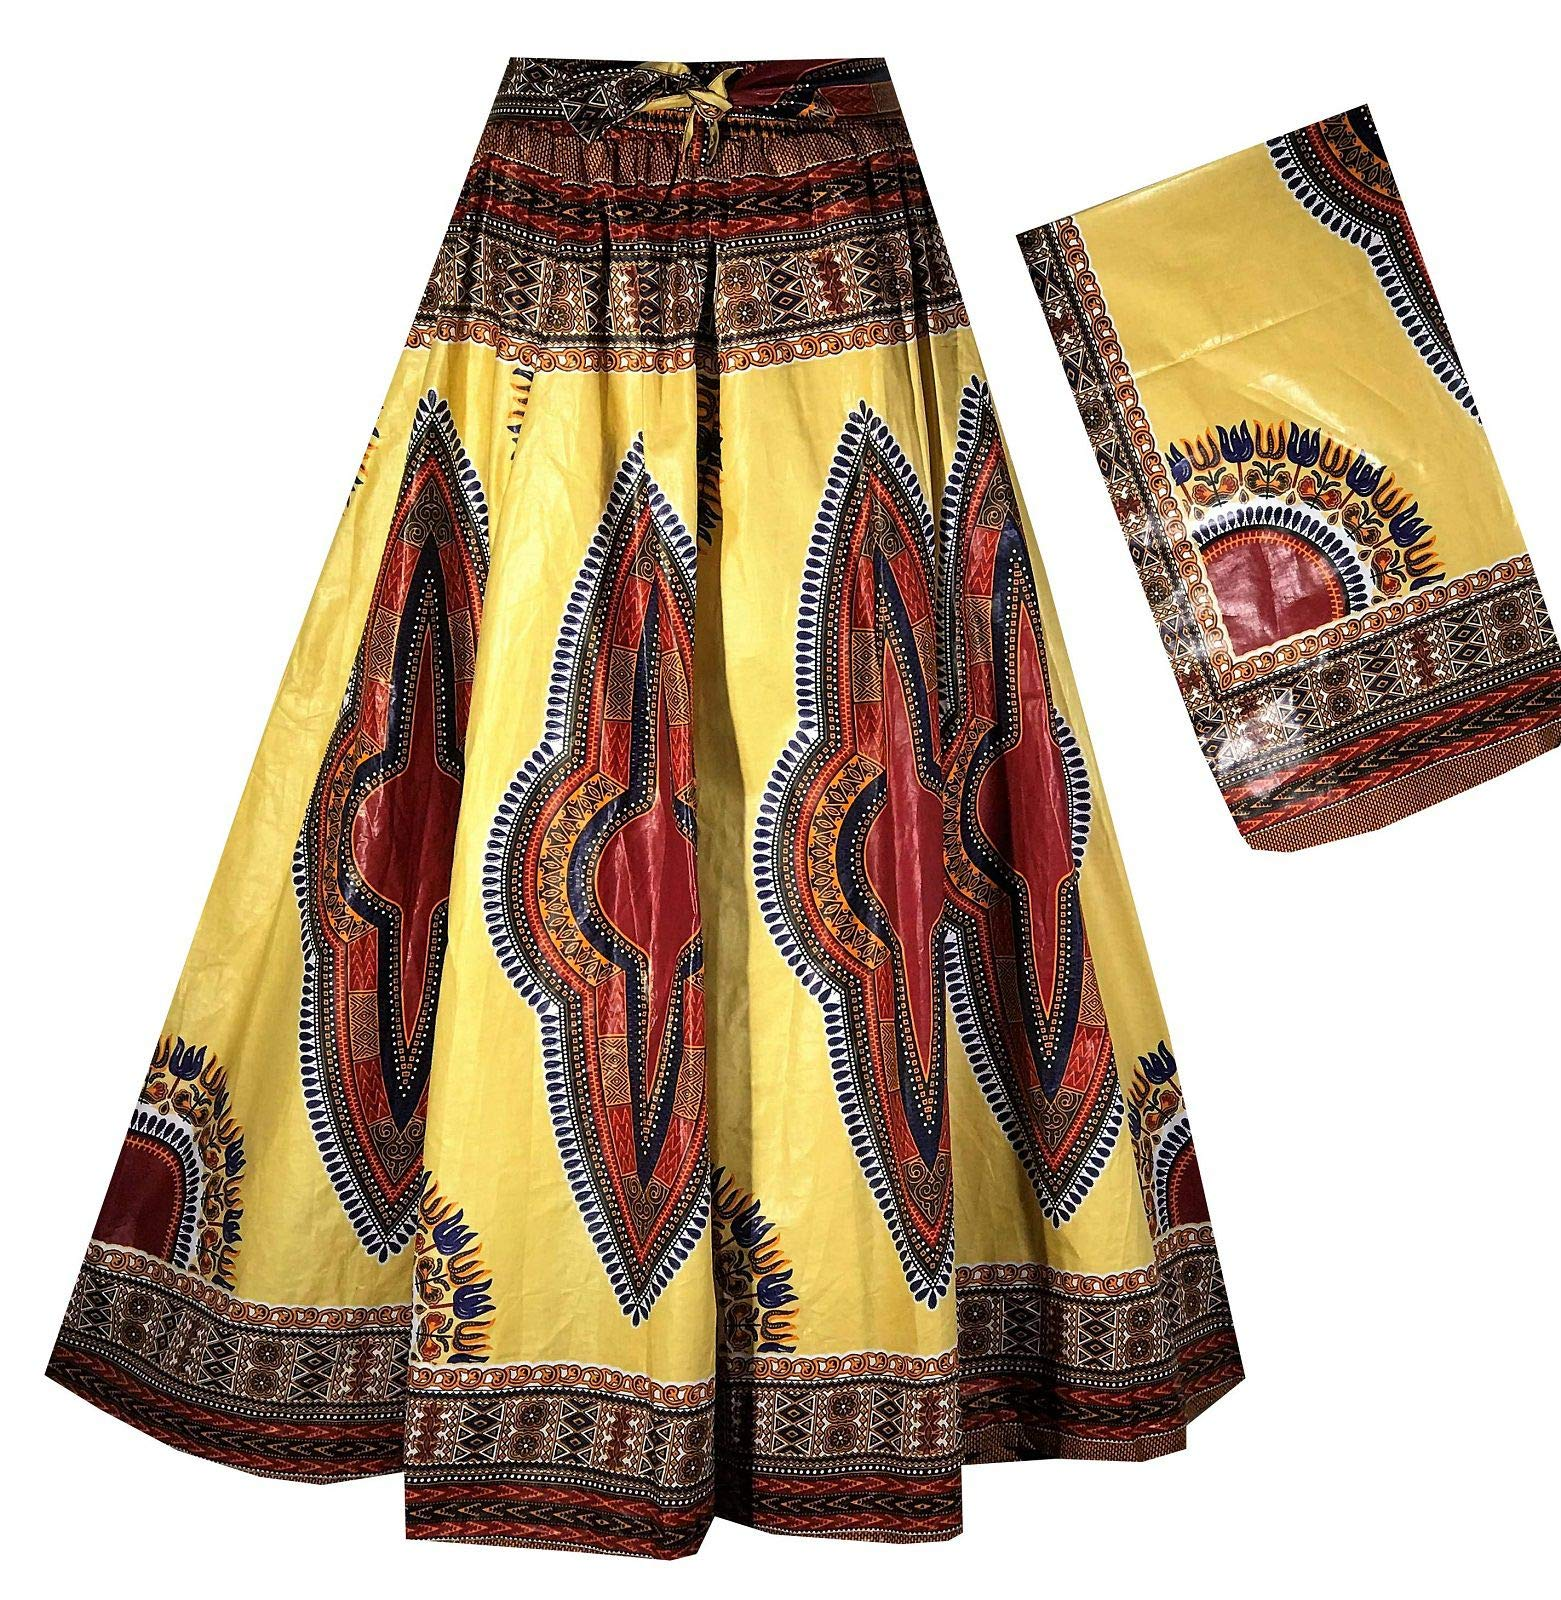 Decoraapparel Women's African Dashiki Maxi Skirt Long High Waist Skirt One Size (Pastel Yellow Red Thick Fabric 174'' Sweep 42'' Long)